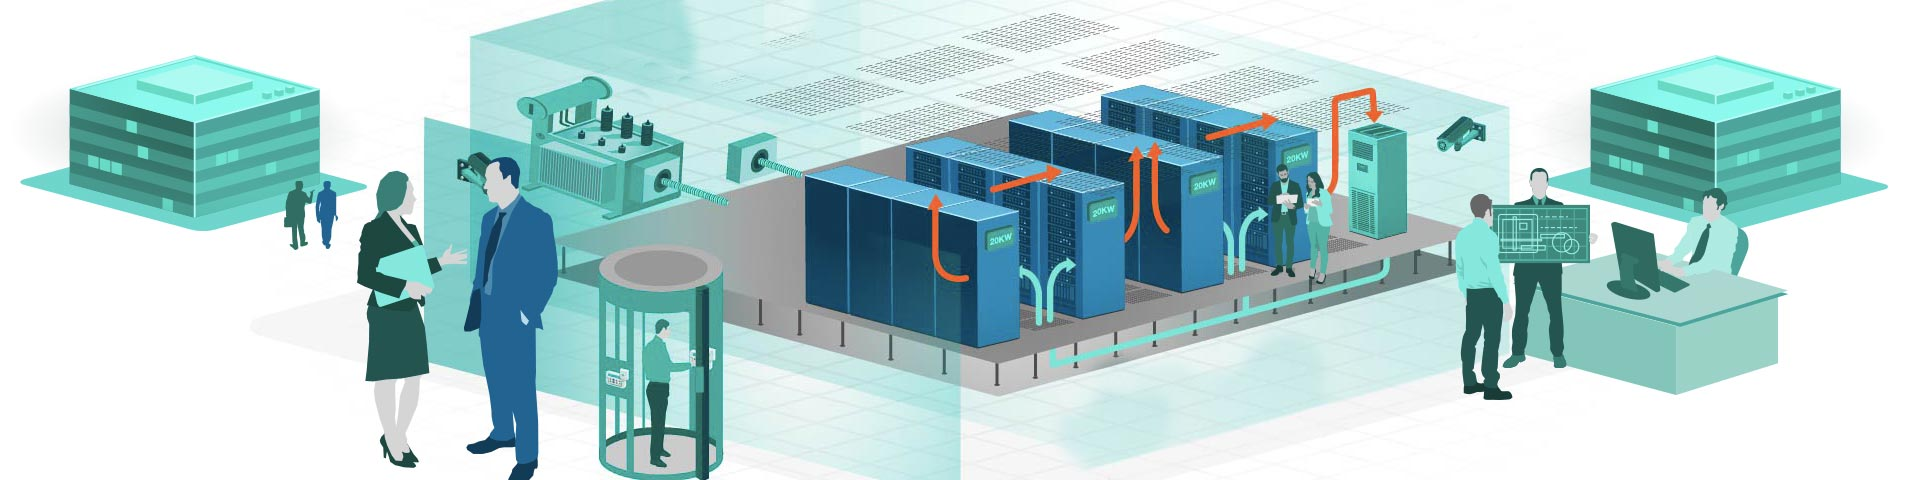 Data centre power and cooling design